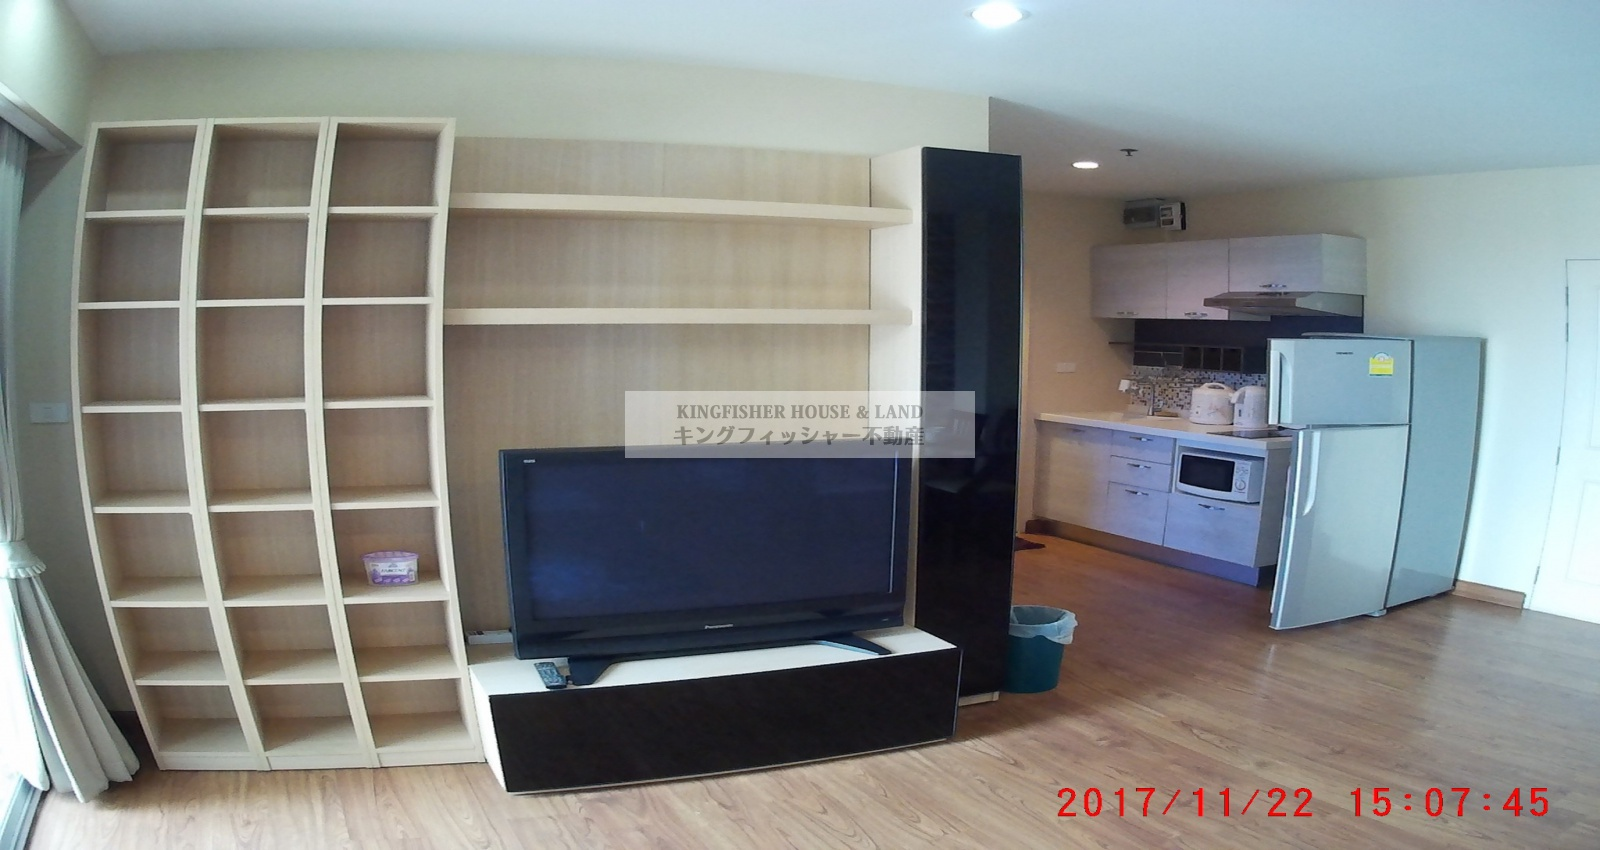 1 Bedrooms, Condominium, For Rent, 1 Bathrooms, Listing ID 1270, Sriracha, Thailand, 20110,